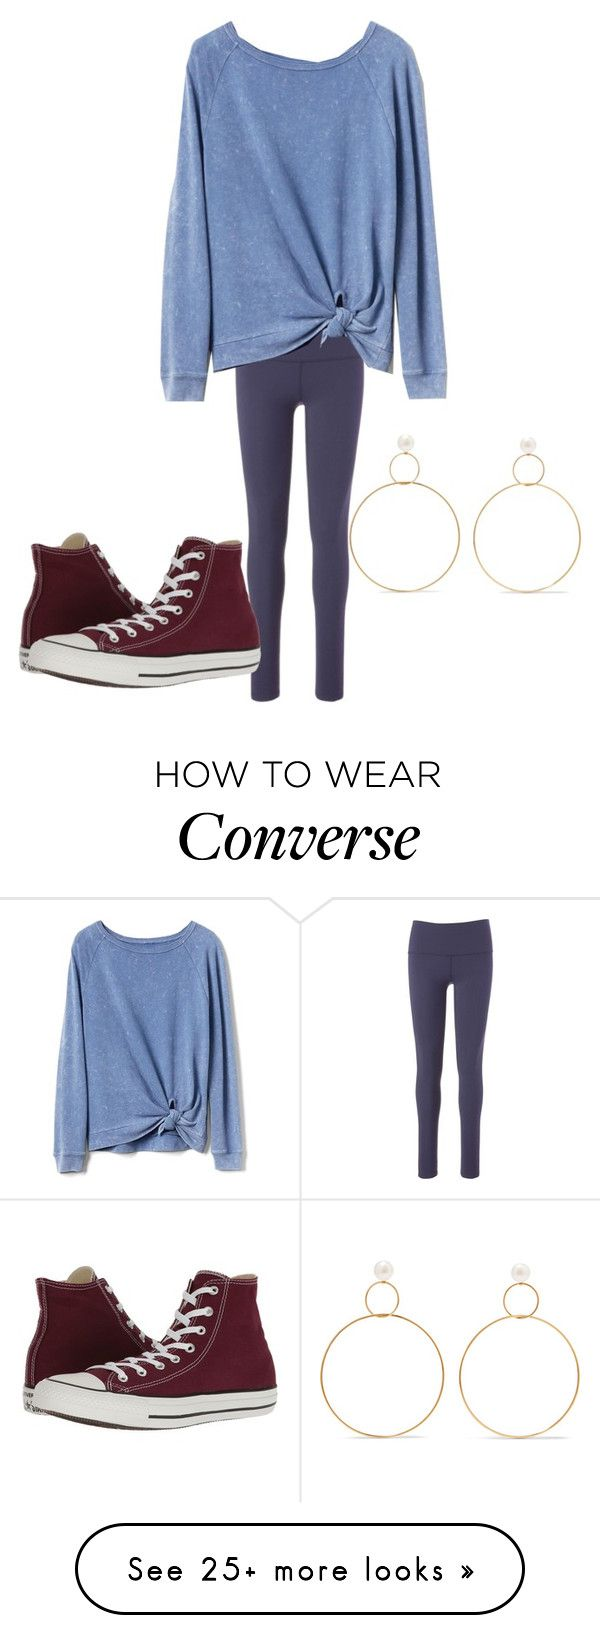 """Ally Burgundy"" by rabiaheart-13 on Polyvore featuring Beyond Yoga, Gap, Converse and Natasha Schweitzer"